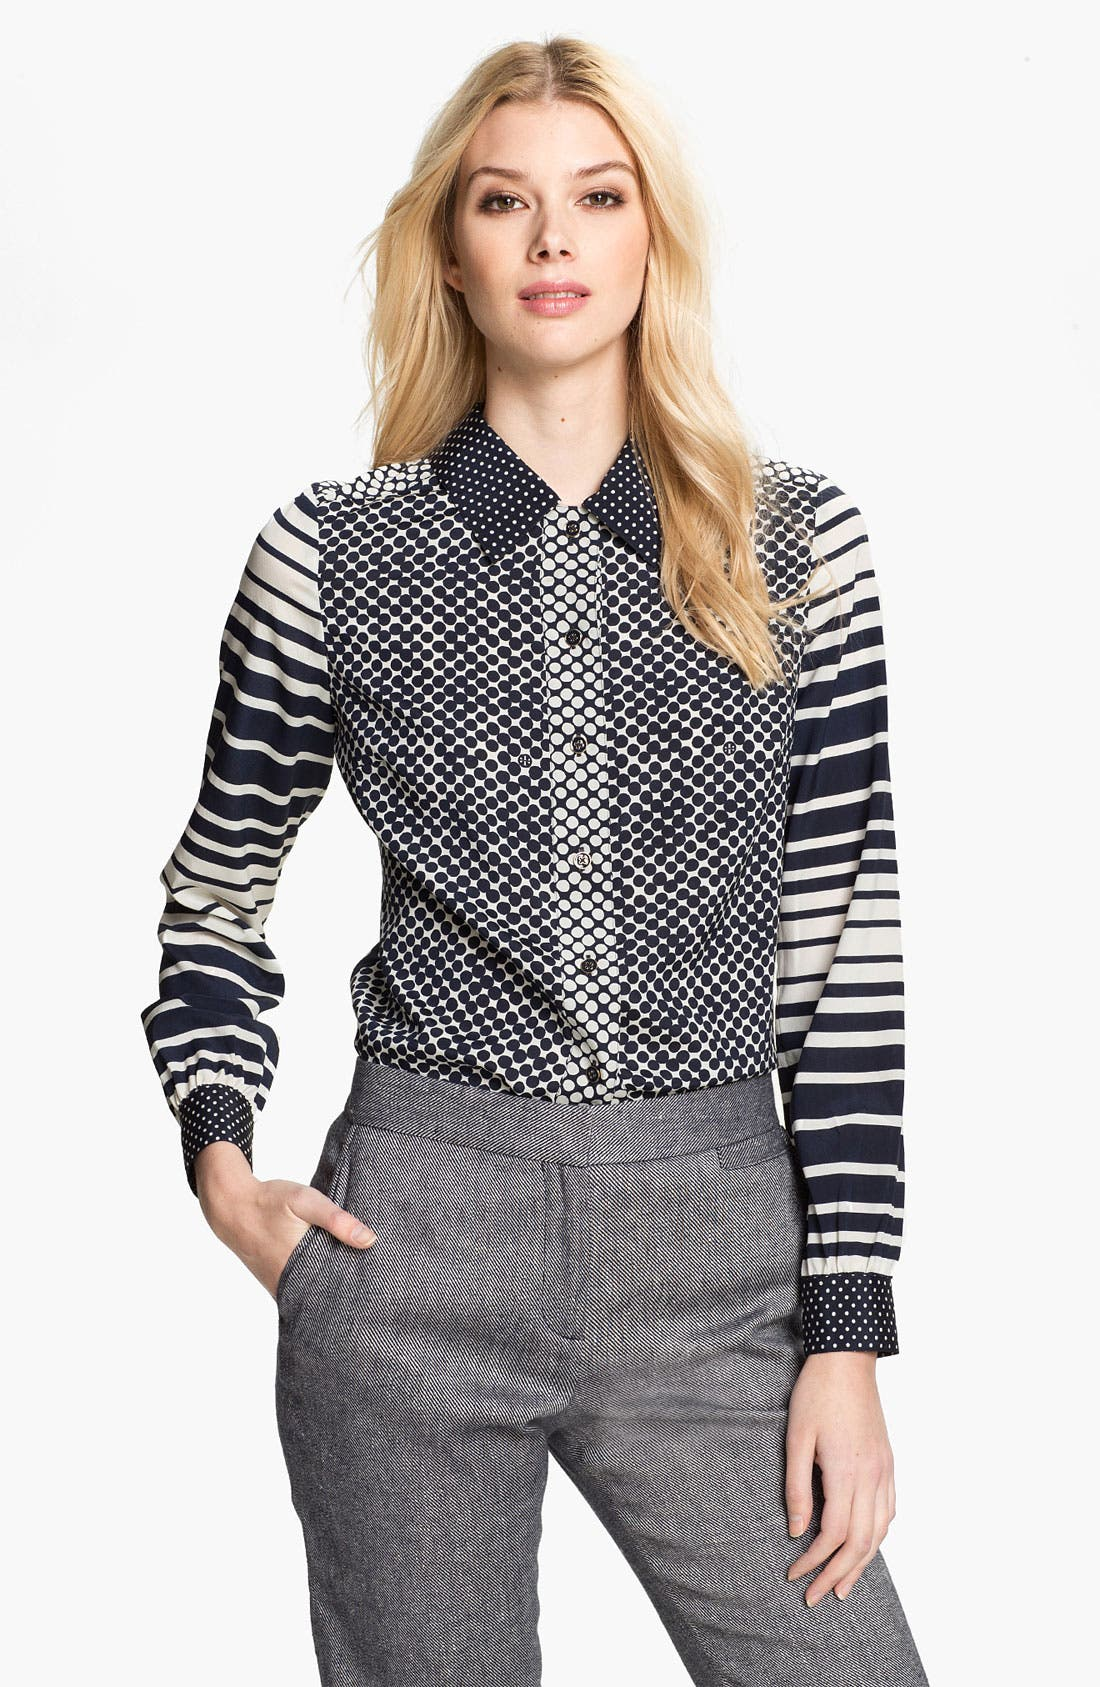 Alternate Image 1 Selected - Tory Burch 'Angelique' Stretch Silk Blouse